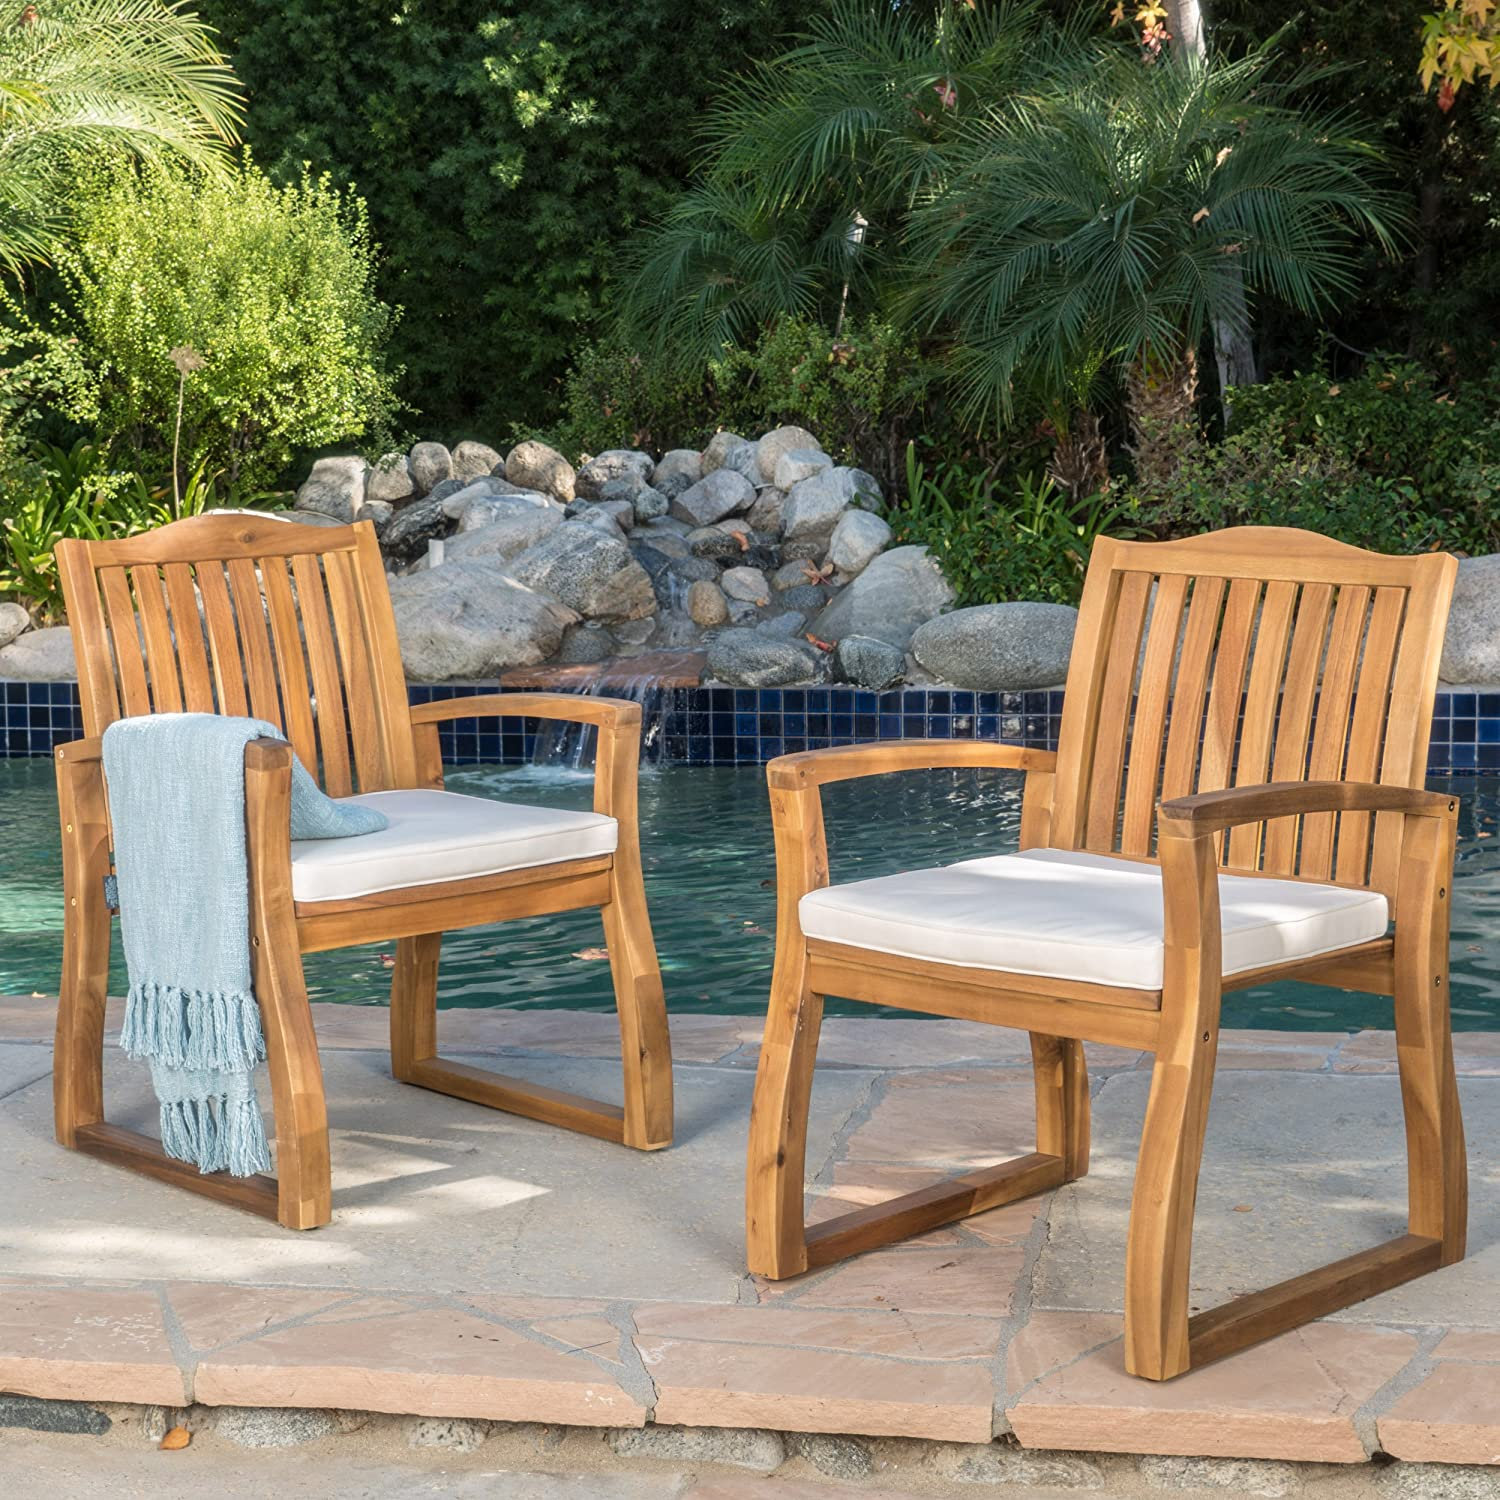 Christopher Knight Home Tampa Teak Finish Acacia Wood Outdoors Dining Chairs Set of 2